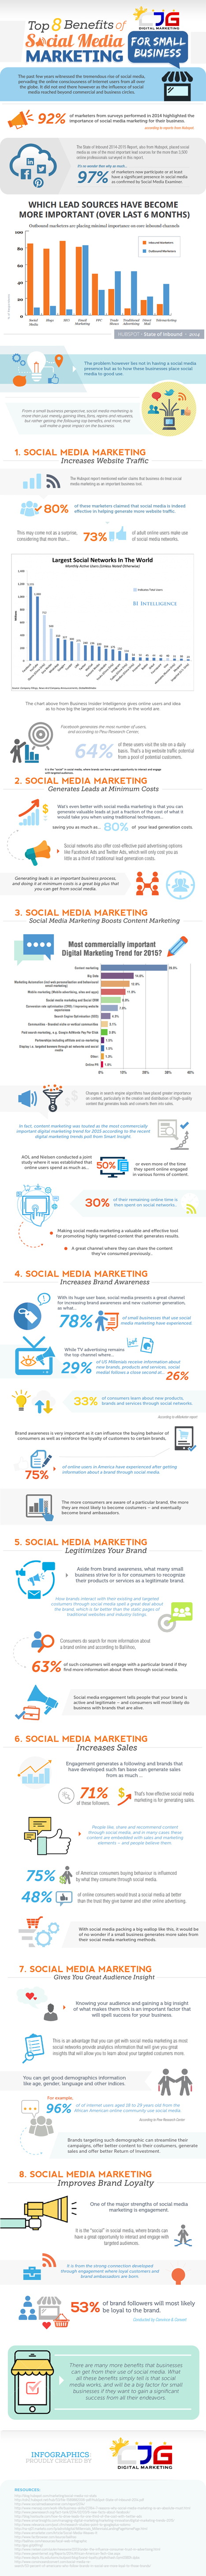 Top 8 Benefits of Social Media Marketing for Small Business (Infographic) | Modern Marketer | Scoop.it